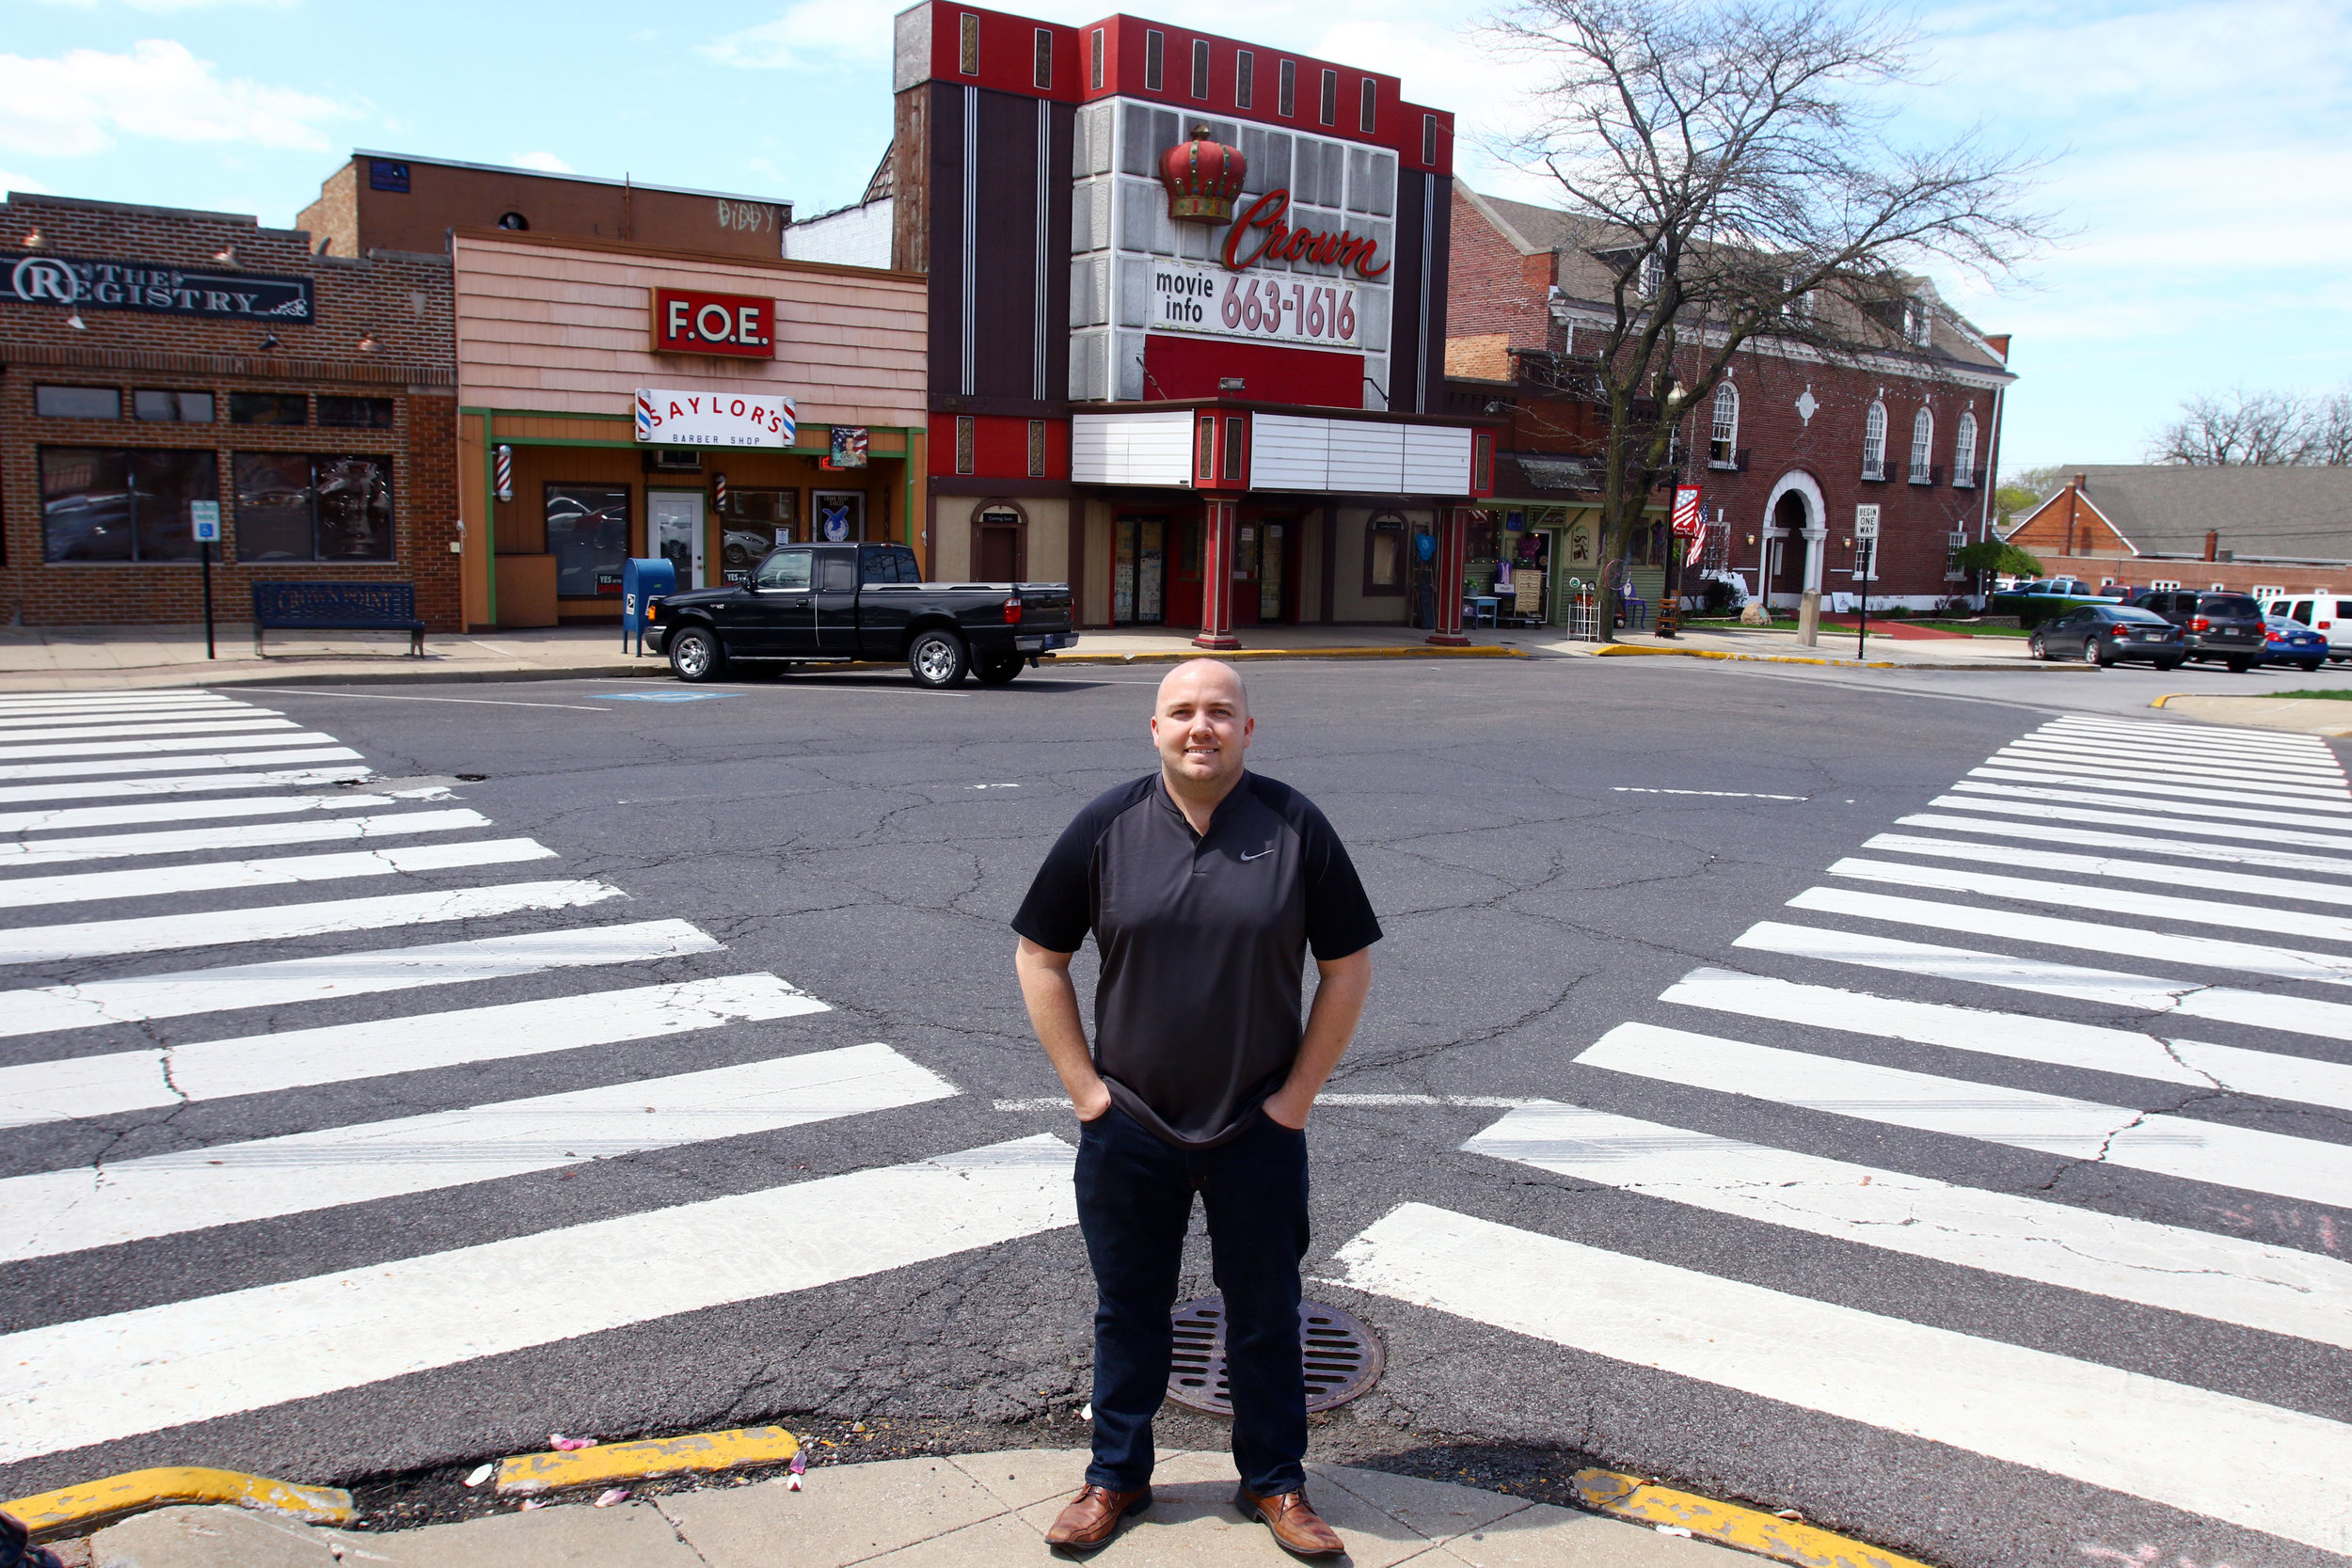 Brad Strom, of Crown Point, poses outside the Crown Theater in downtown Crown Point. Strom recently purchased the property with plans to try and fill the entertainment void left by the closing, and eventual demolition, of the Star Plaza Theatre.